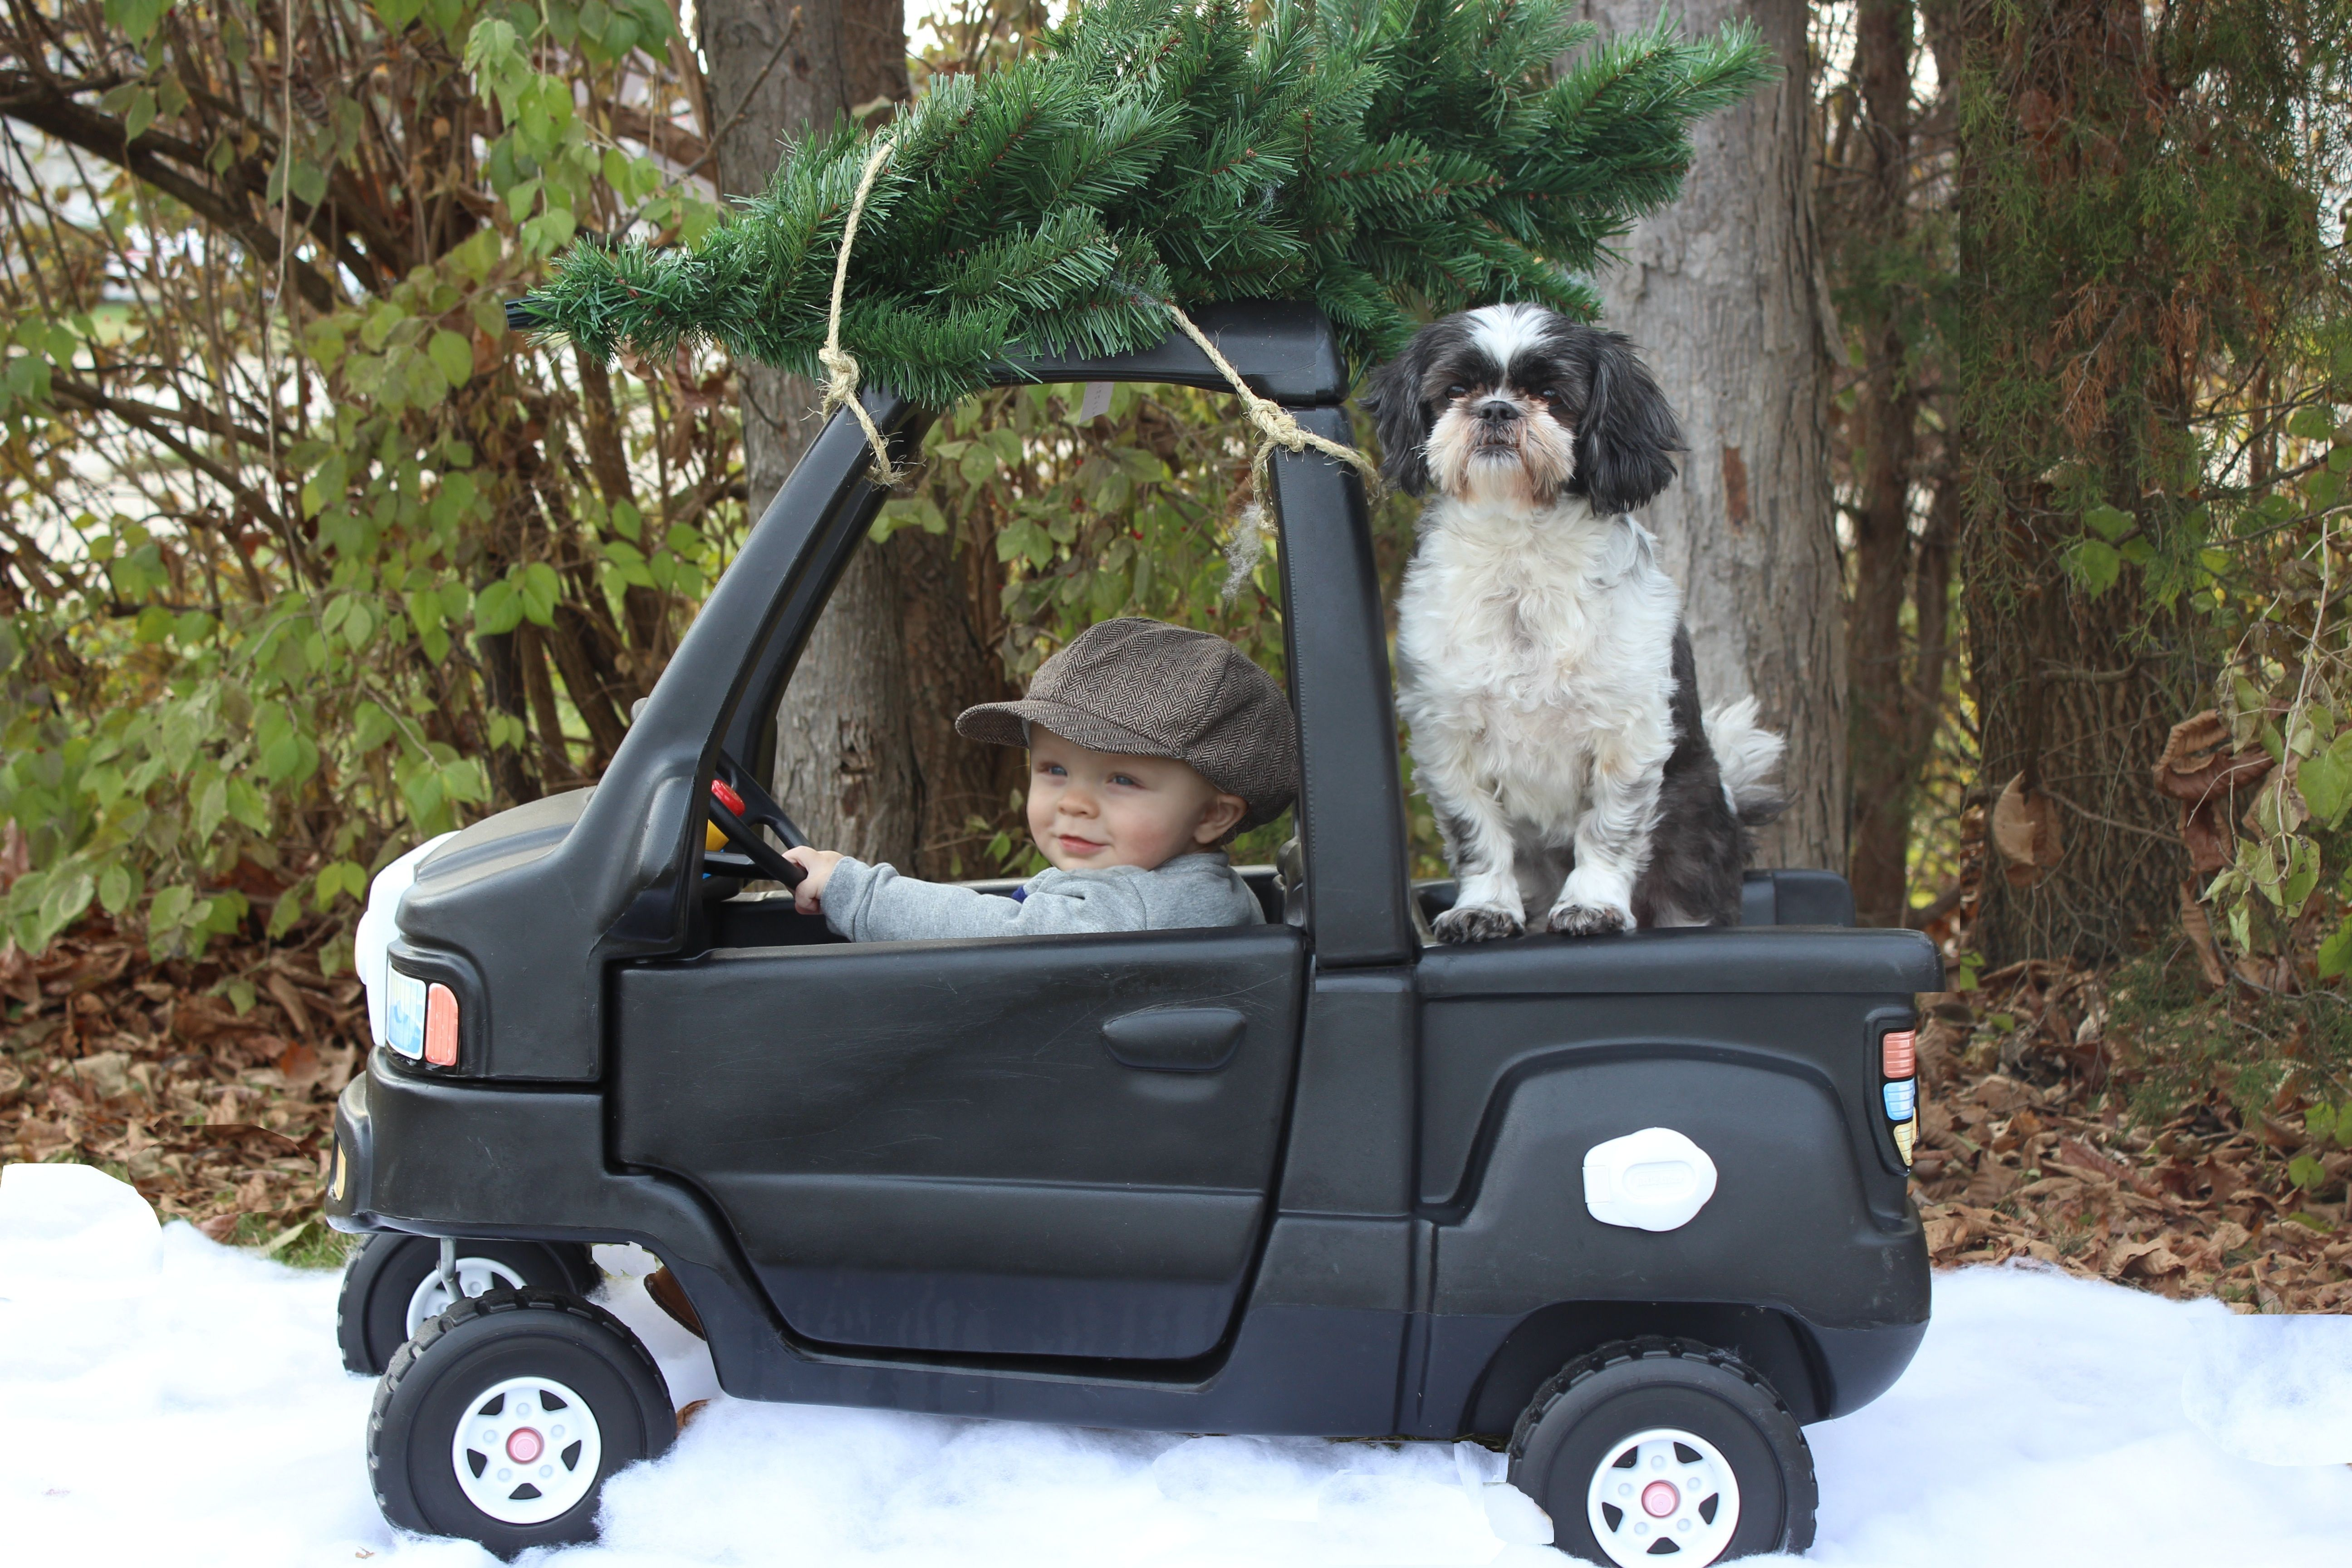 Pin on Christmas Tree Farm Picture Ideas